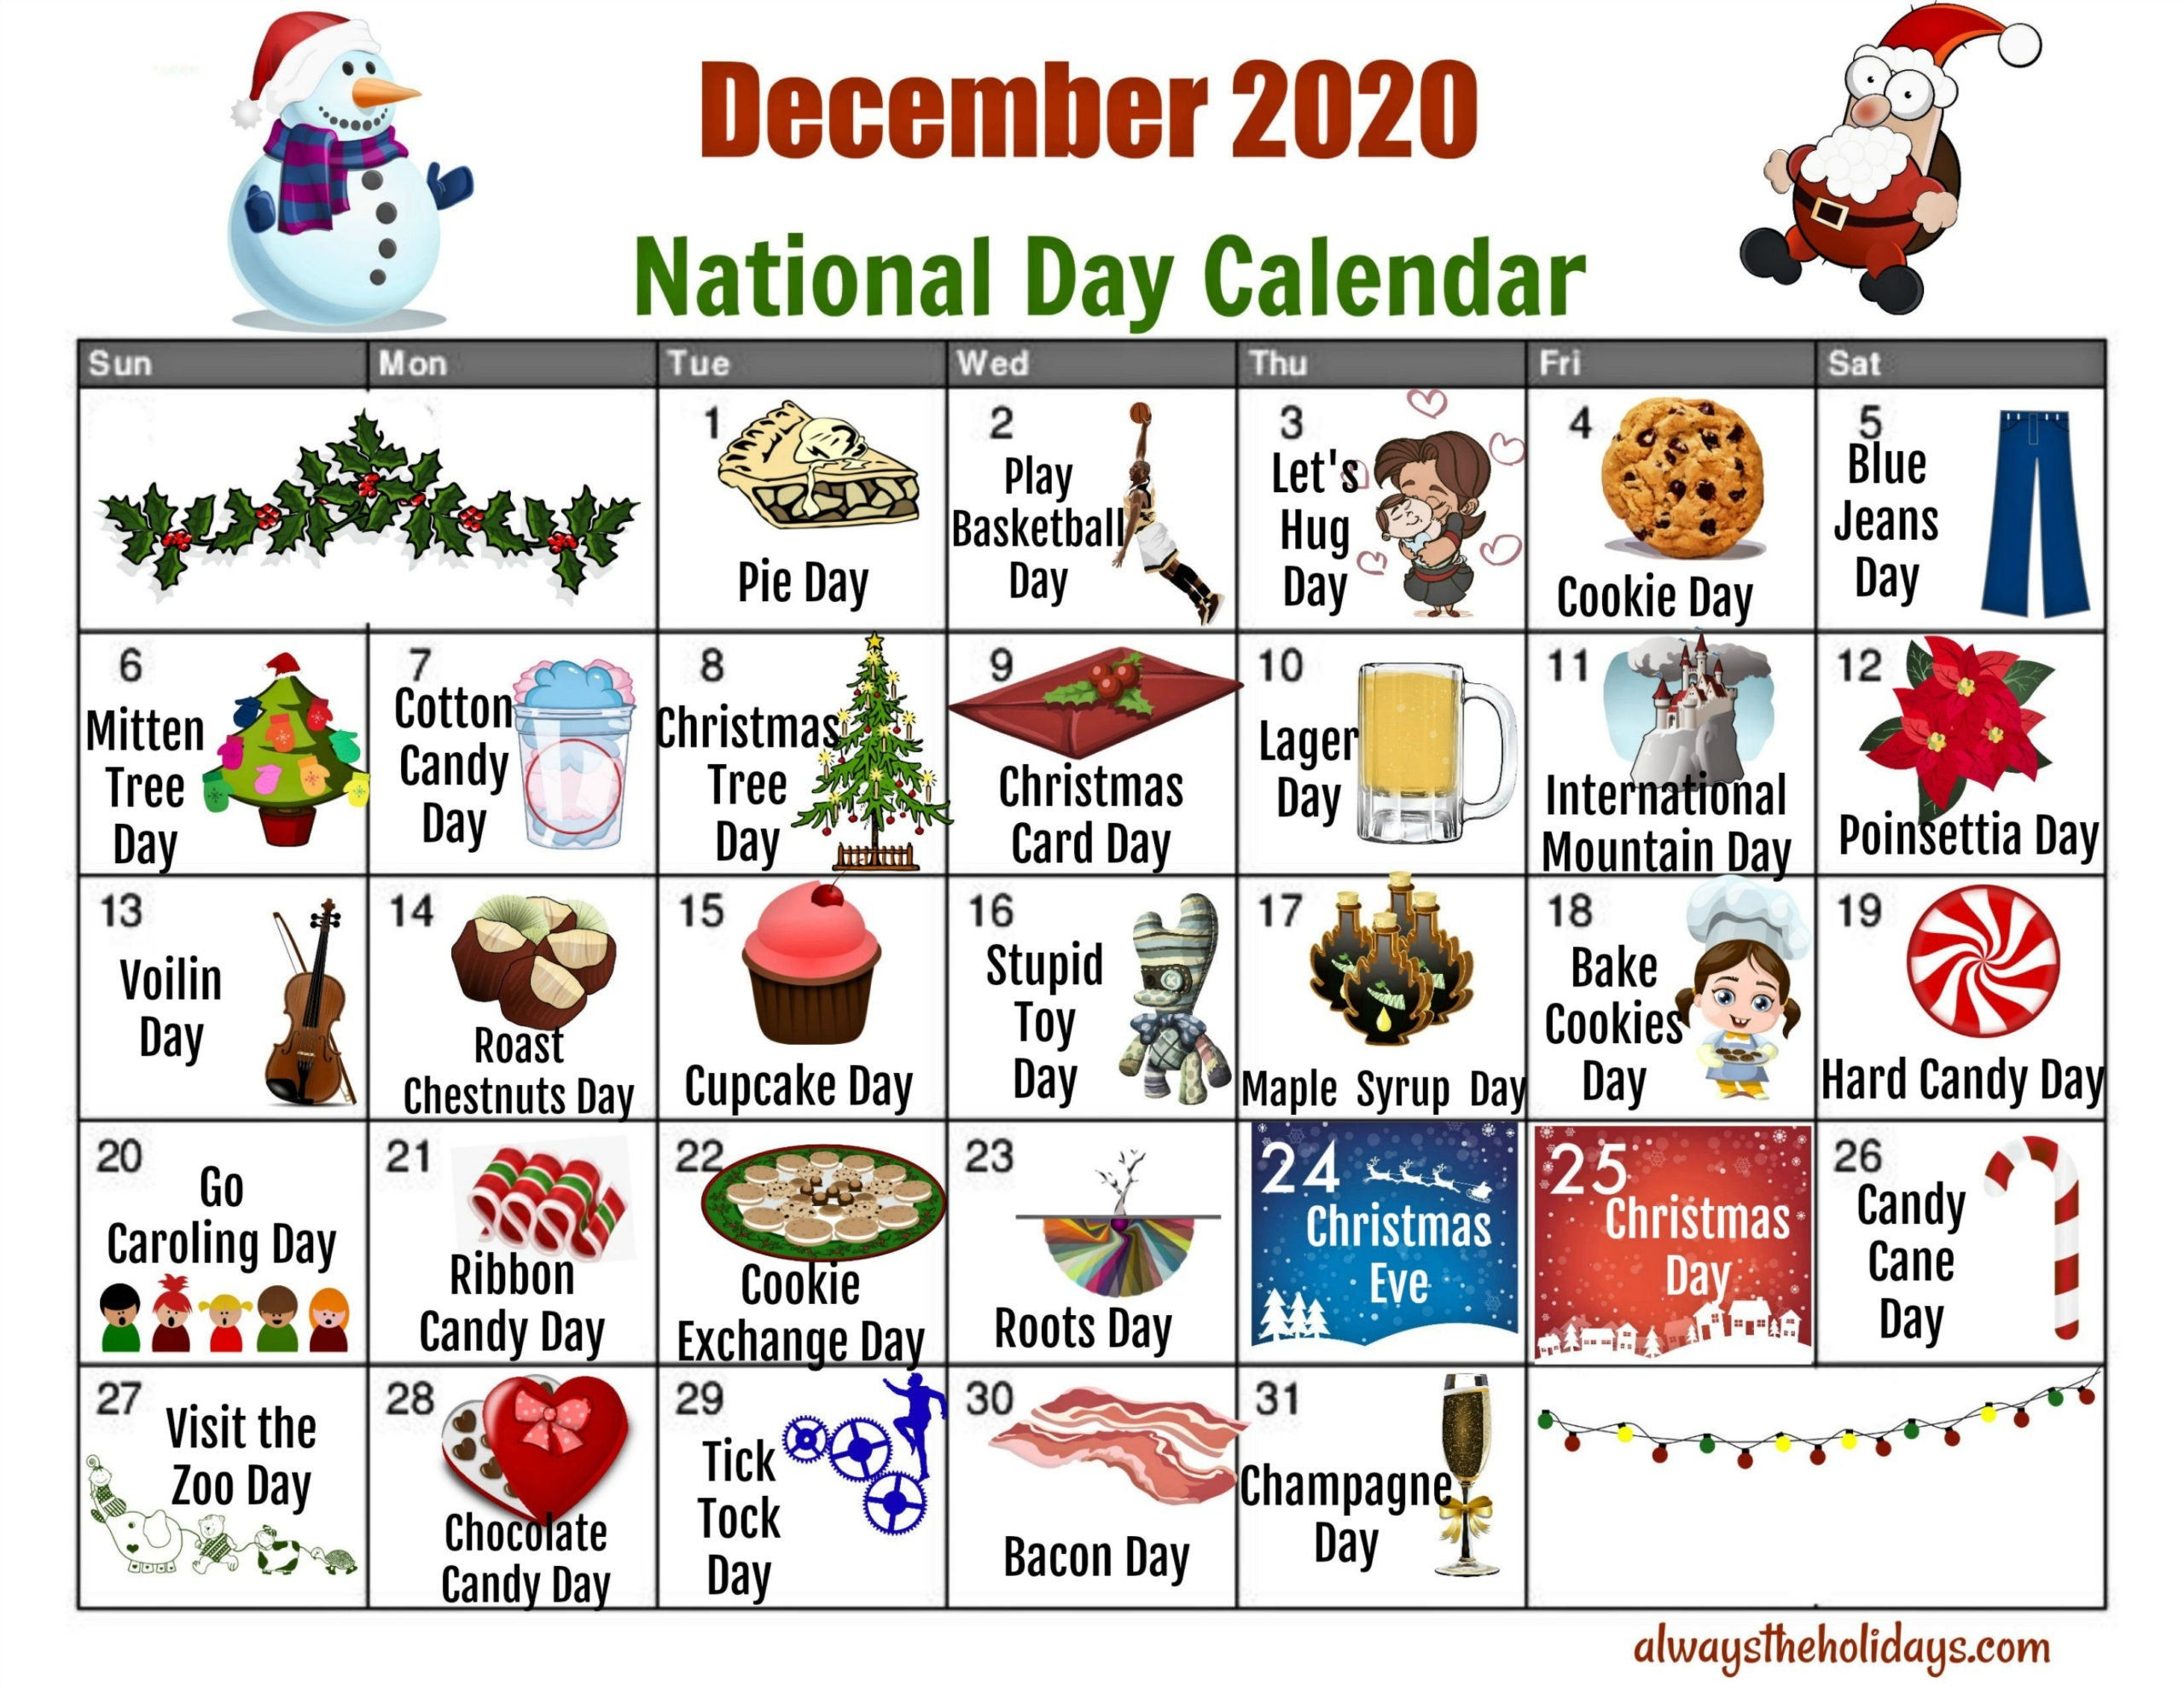 December National Day Calendar - Free Printable Calendars-Fun National Day Calendar Of 2021 Printable